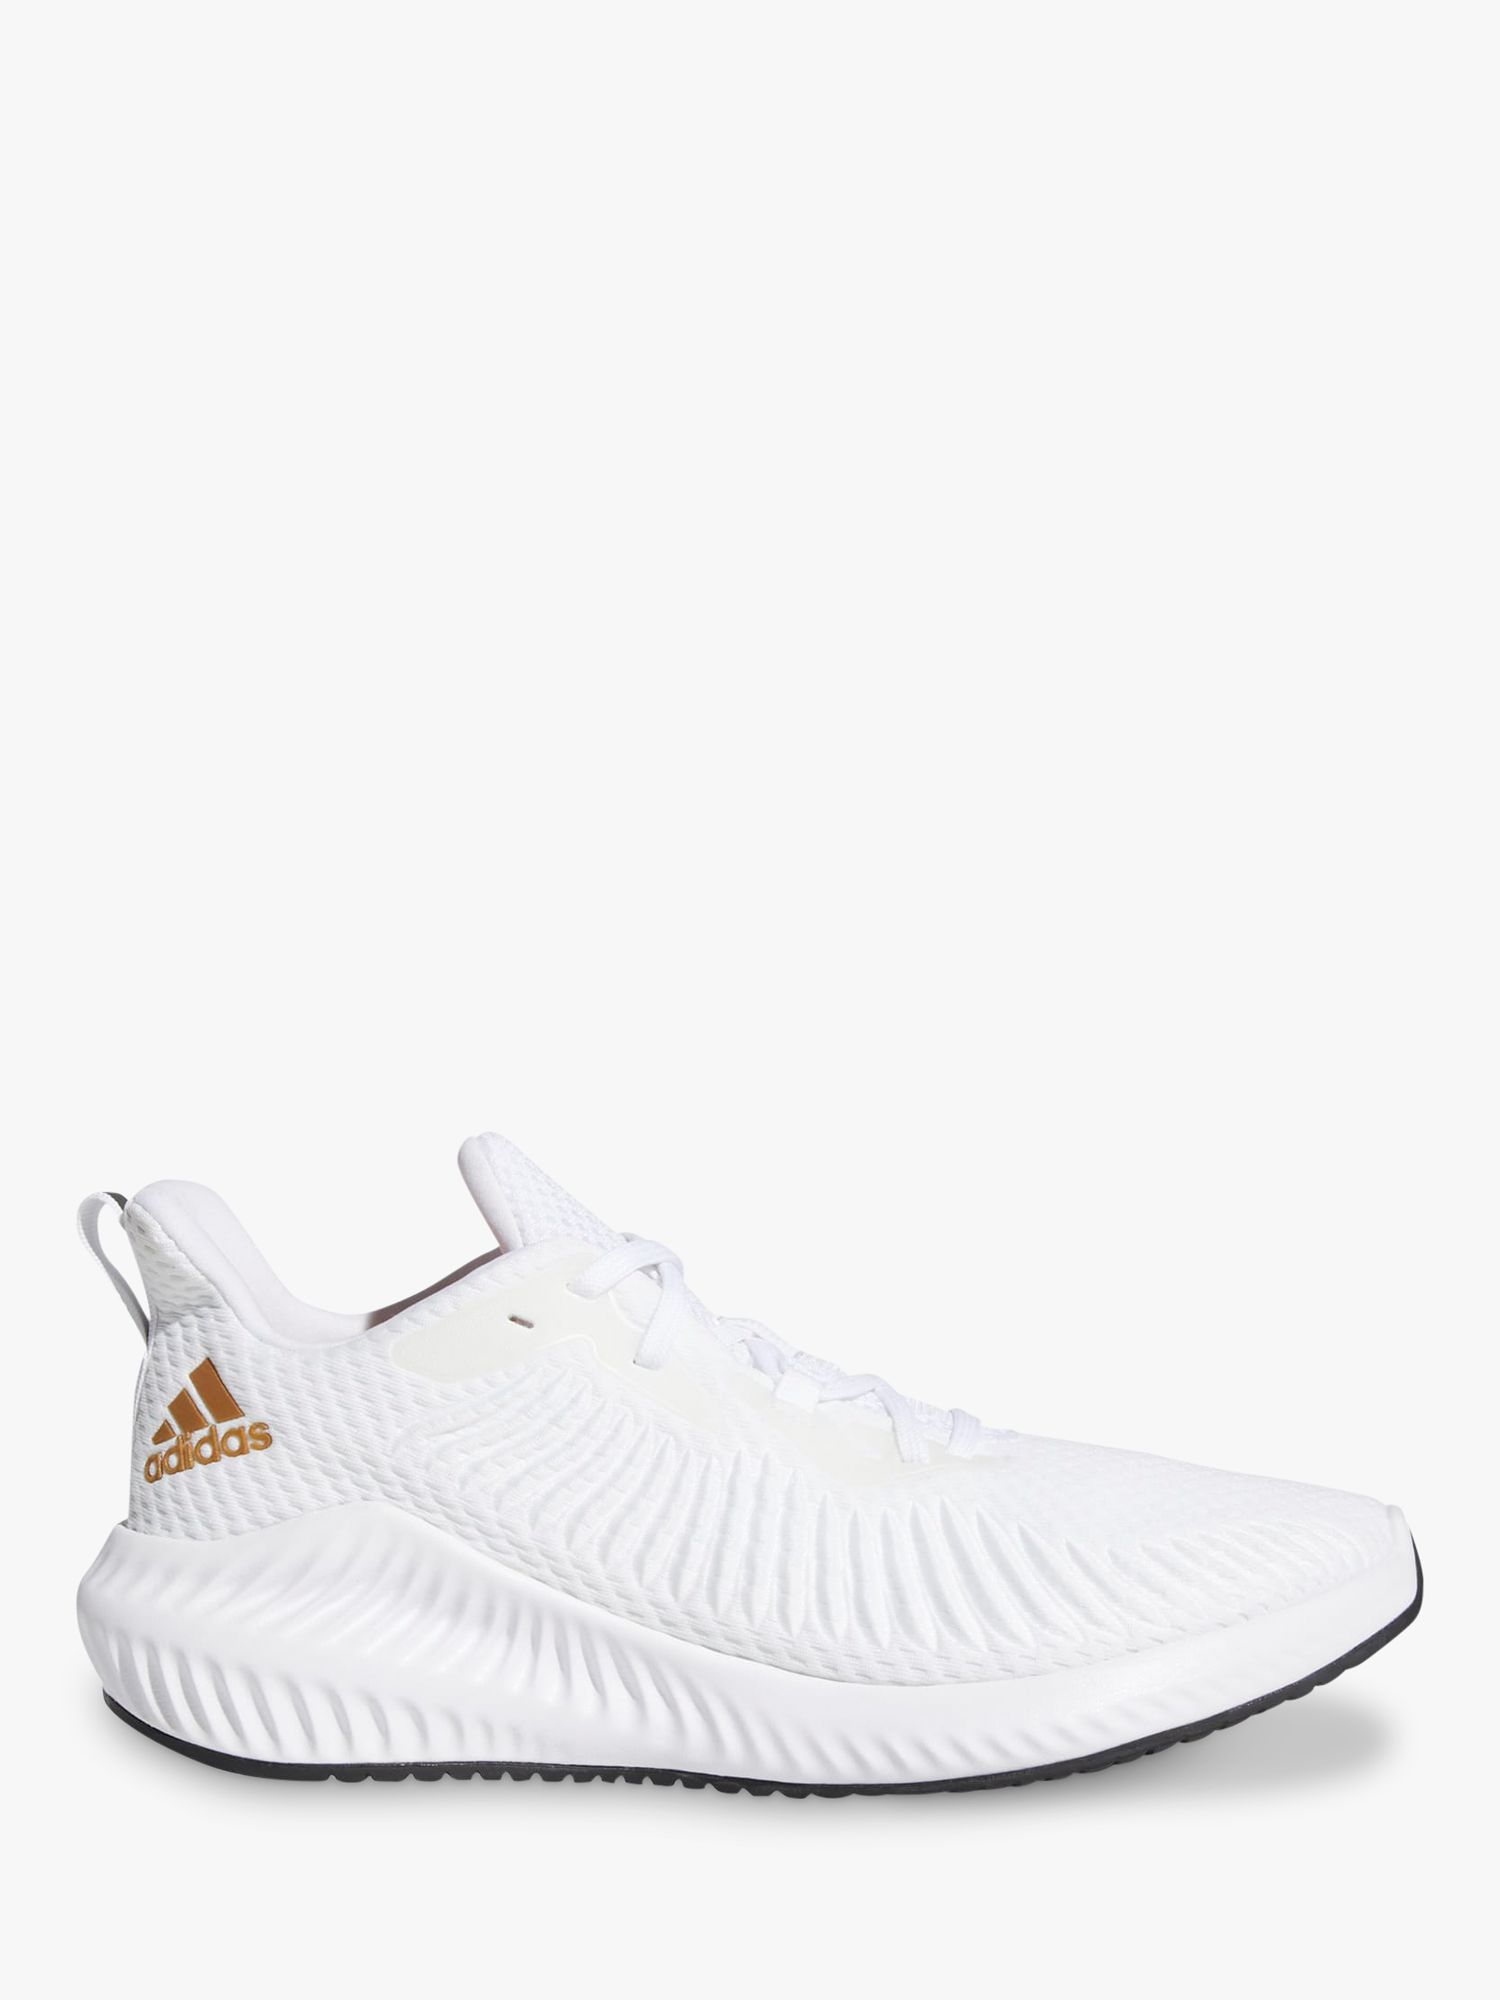 Buy adidas AlphaBounce 3 Women's Cross Trainers, FTWR White/Copper Met./Core Black, 4 Online at www.retrievedmagnetic.com